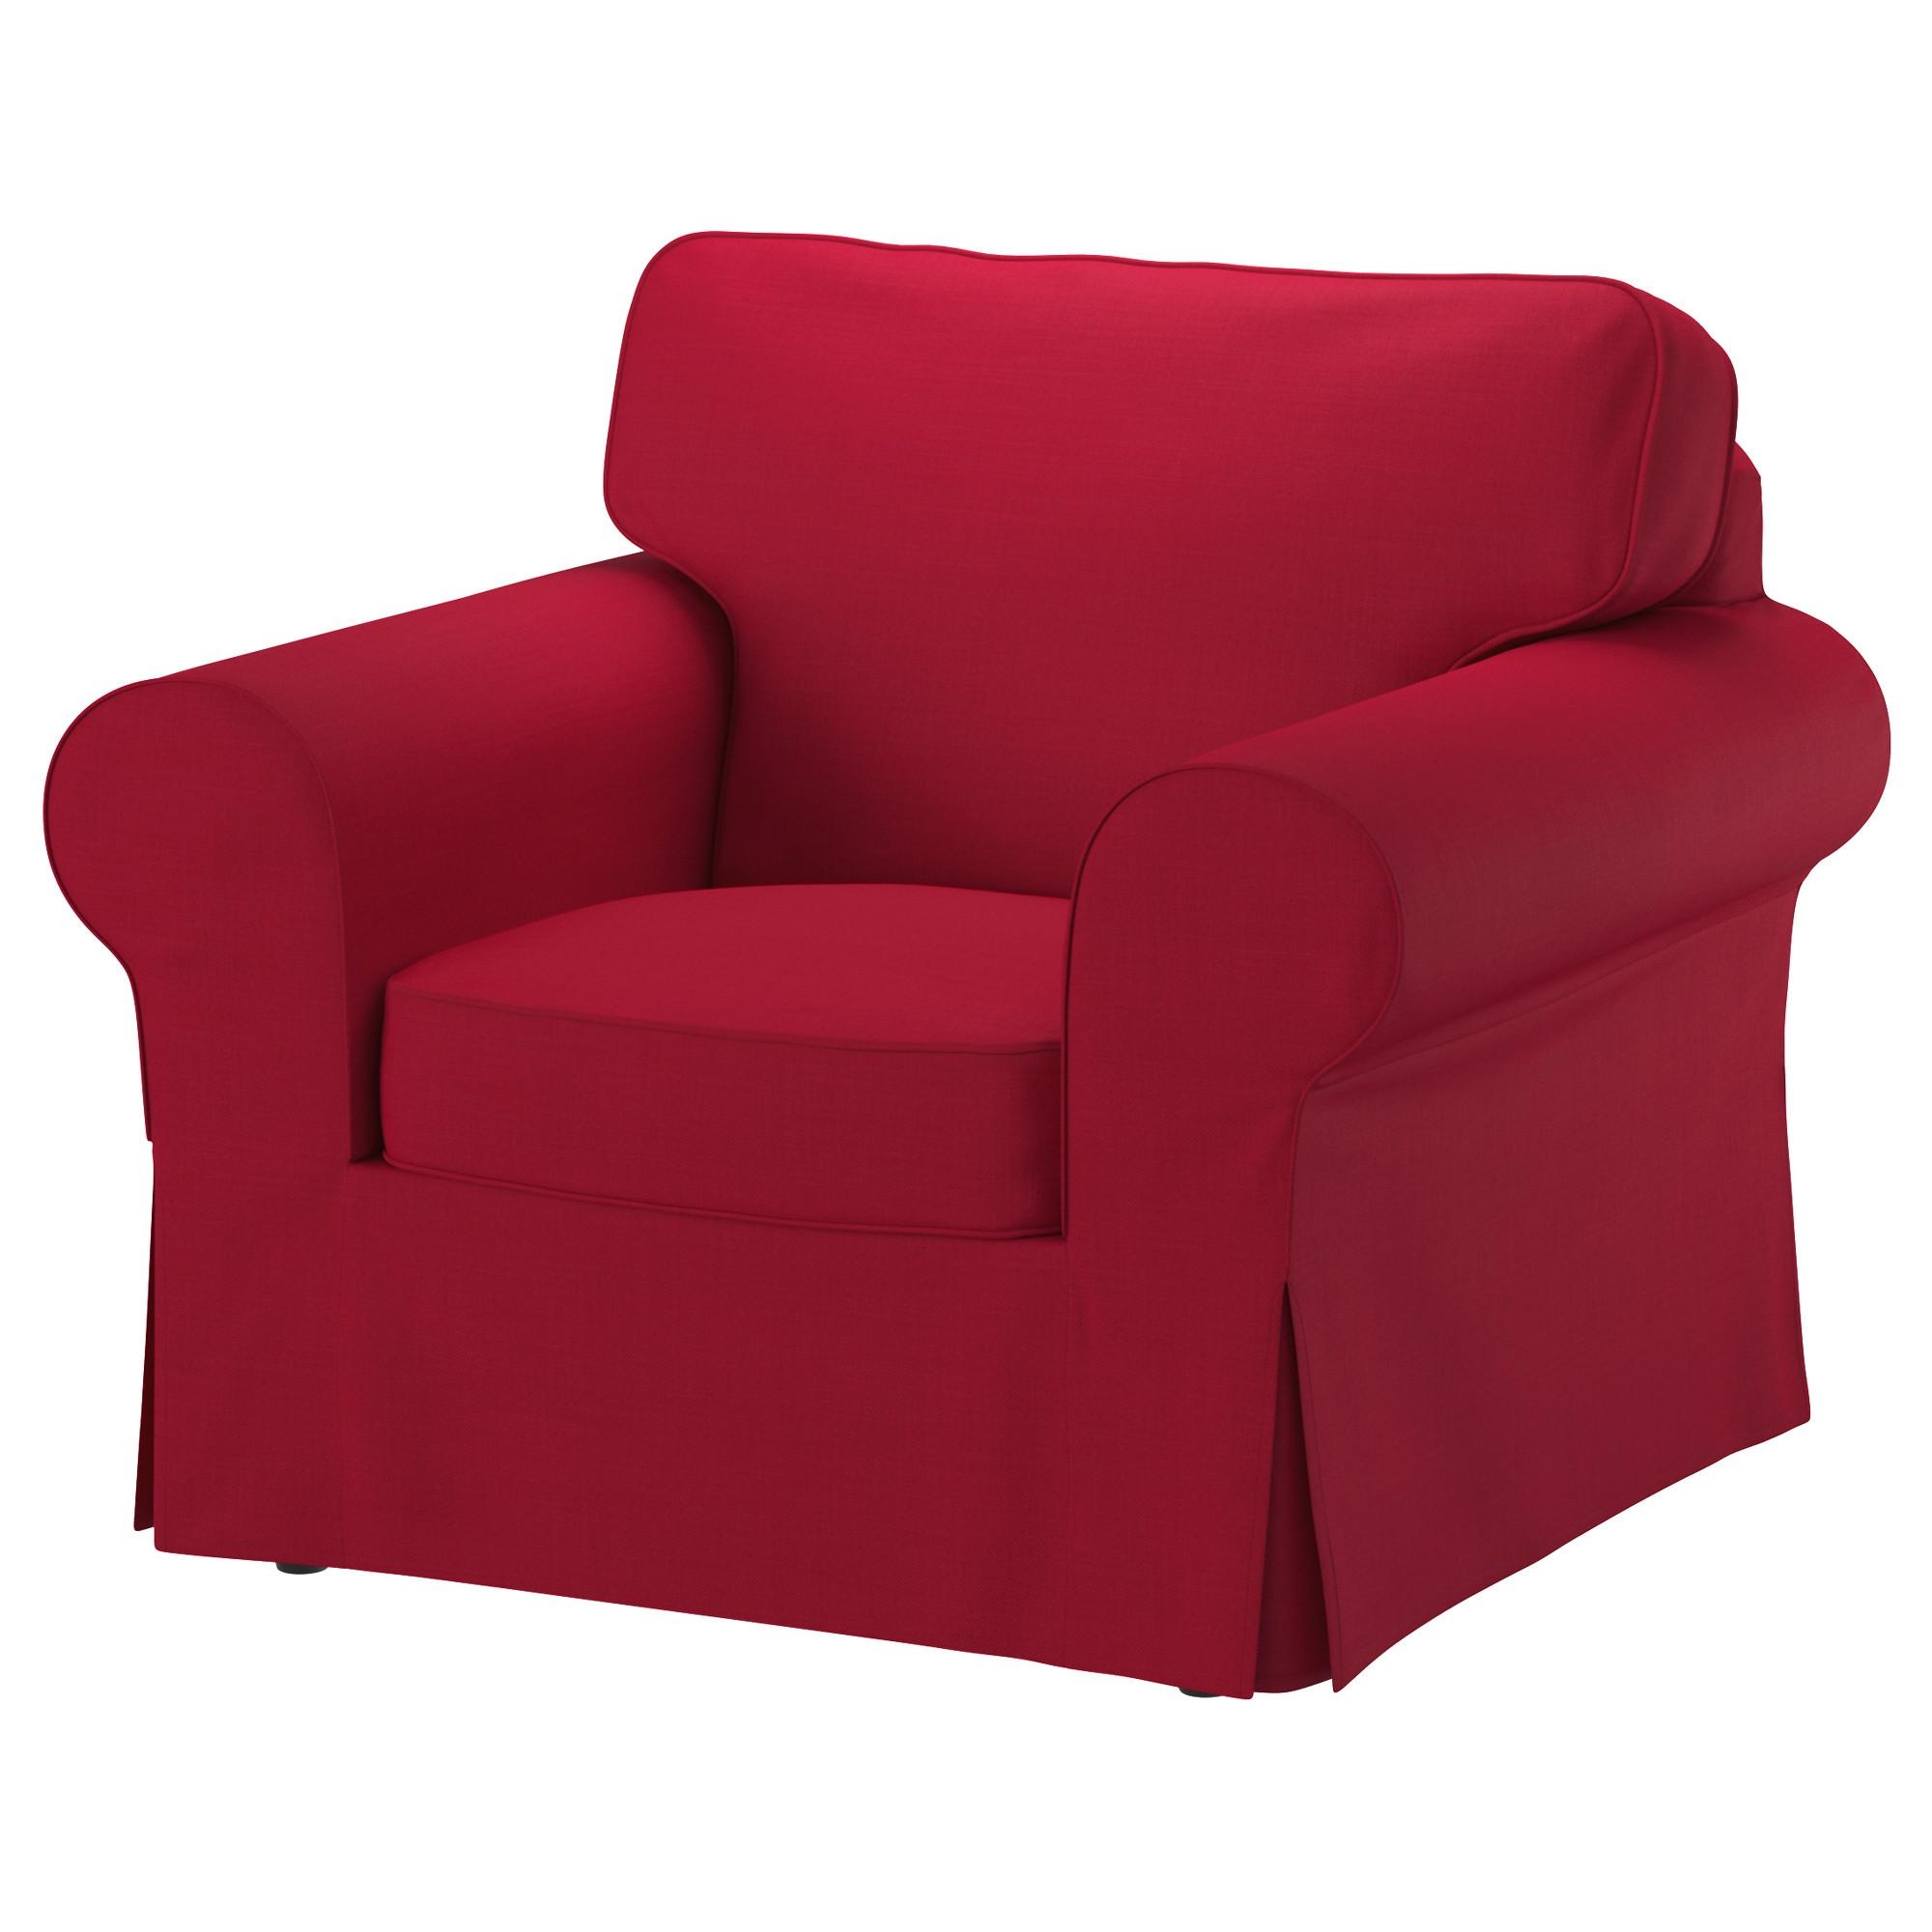 Furniture: Give Your Sofa Fresh New Look With Ikea Ektorp Chair For Sofa And Chair Slipcovers (Image 9 of 20)